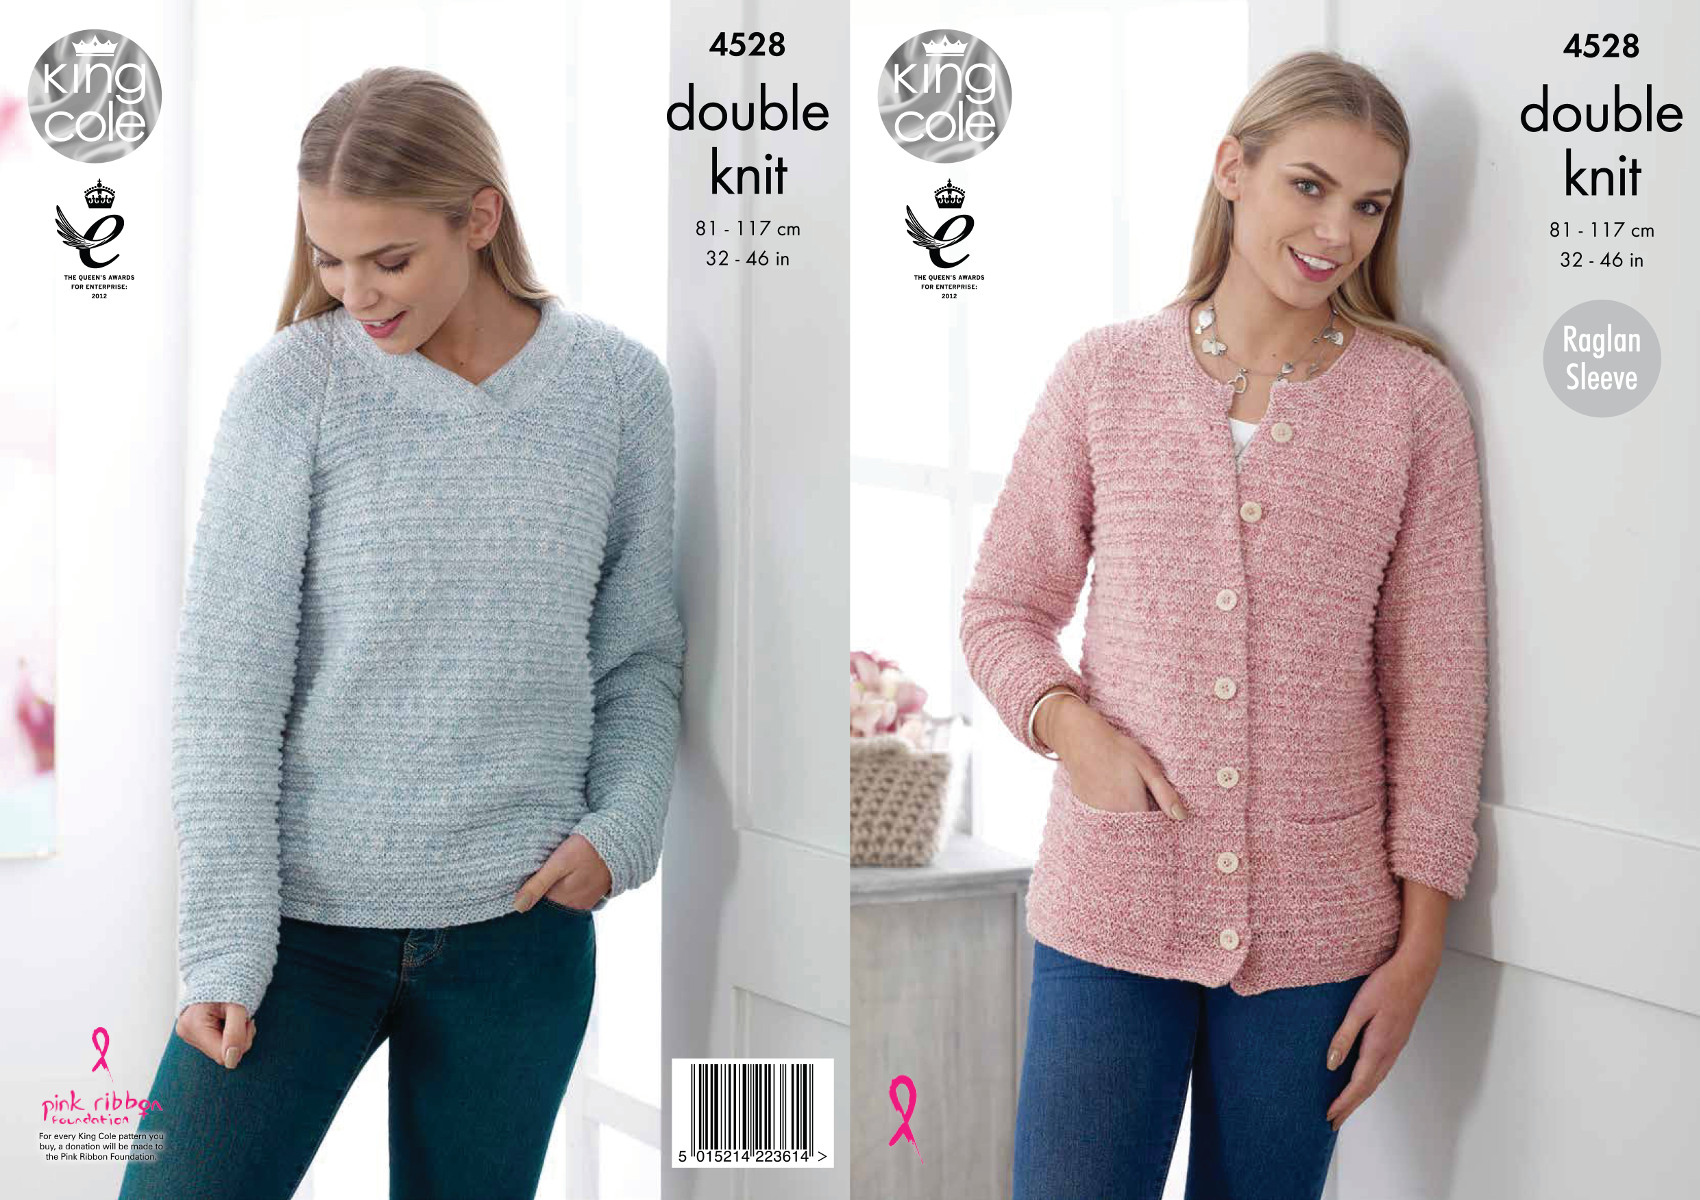 Womens Raglan Sleeve Sweater & Cardigan Knitting Pattern King Cole DK 452...